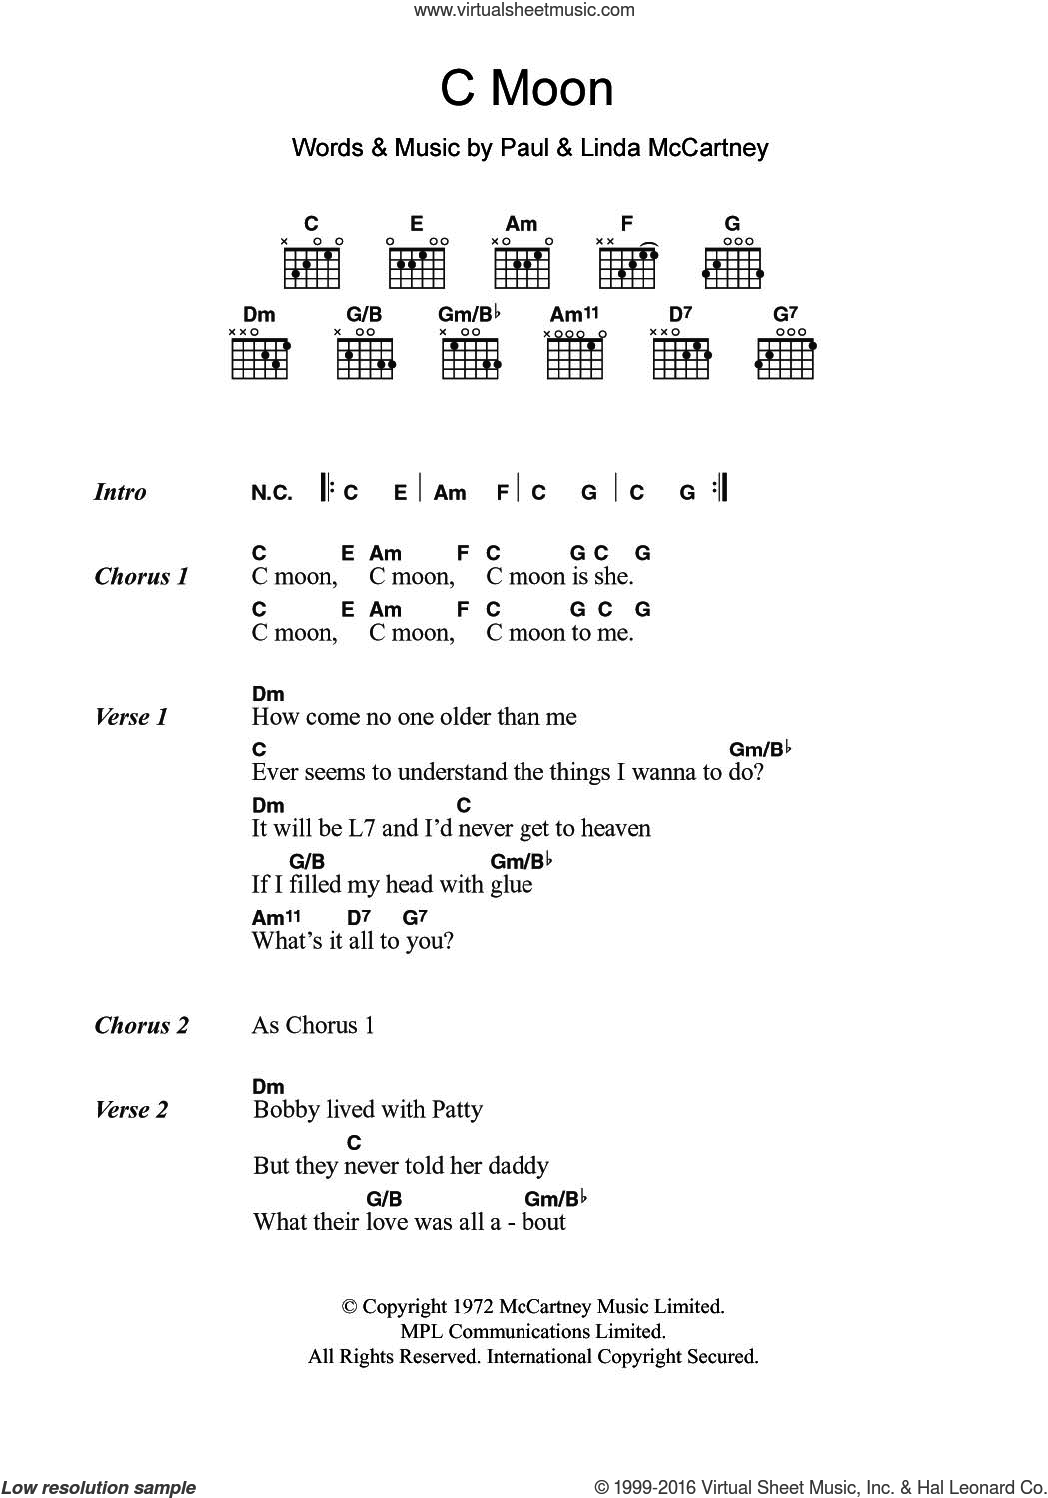 C Moon sheet music for guitar (chords) by Linda McCartney